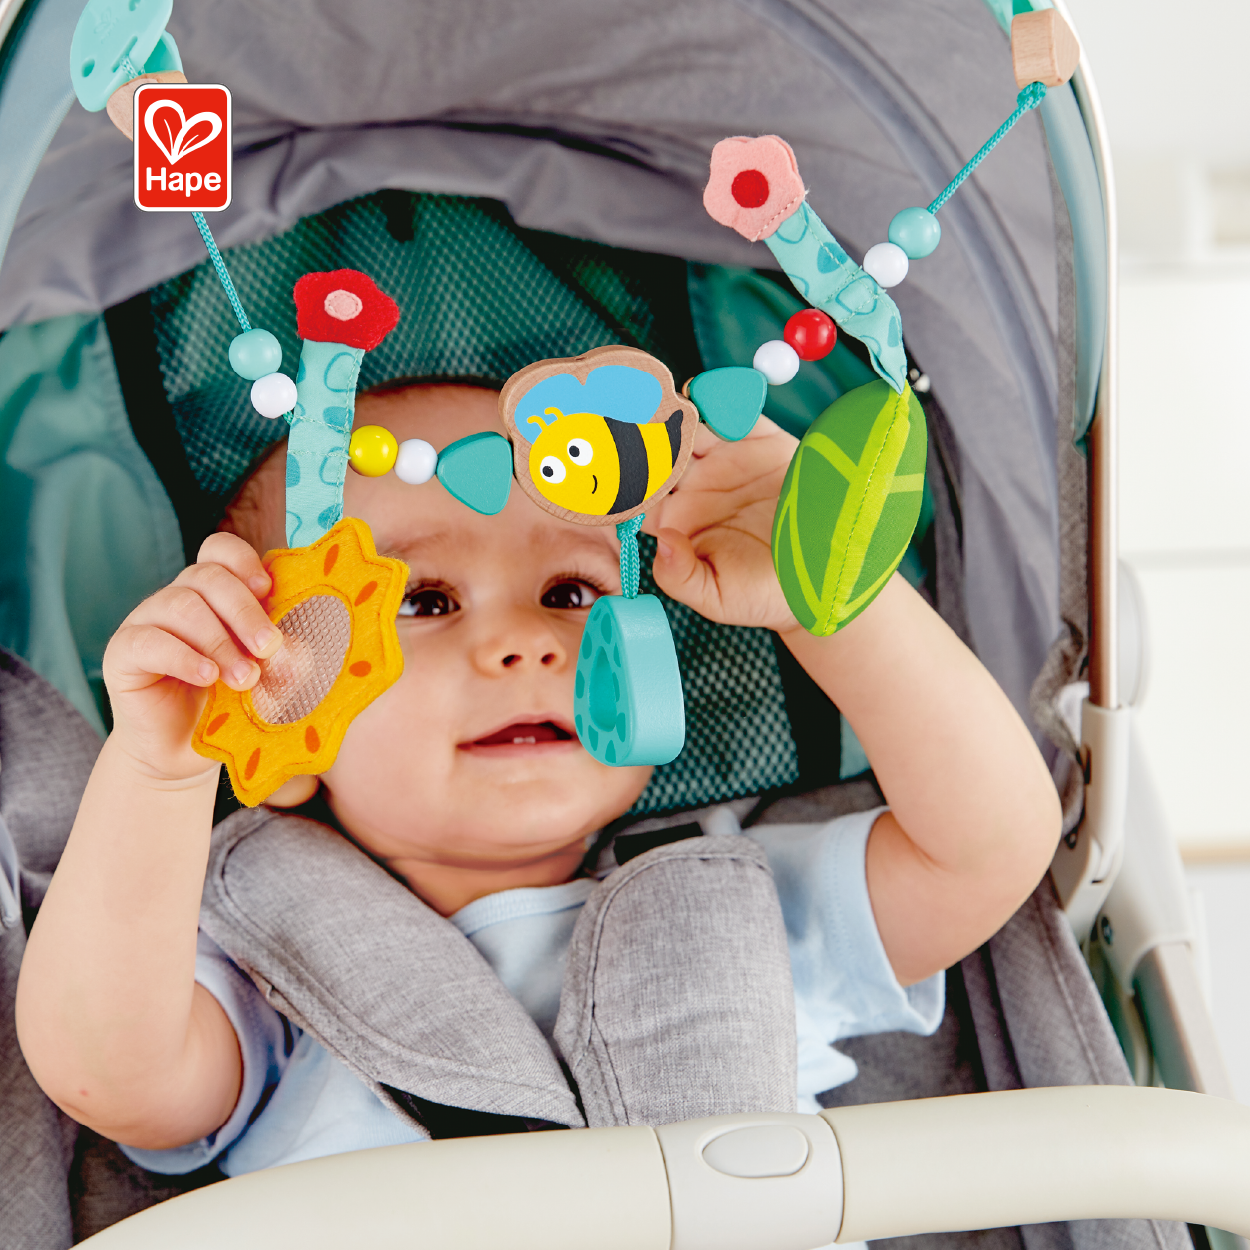 Hot Sale Cute Baby Bed Hanging Toy Rotating Crib Musical Mobile Toys Honeybee Pram Chain Baby Toys